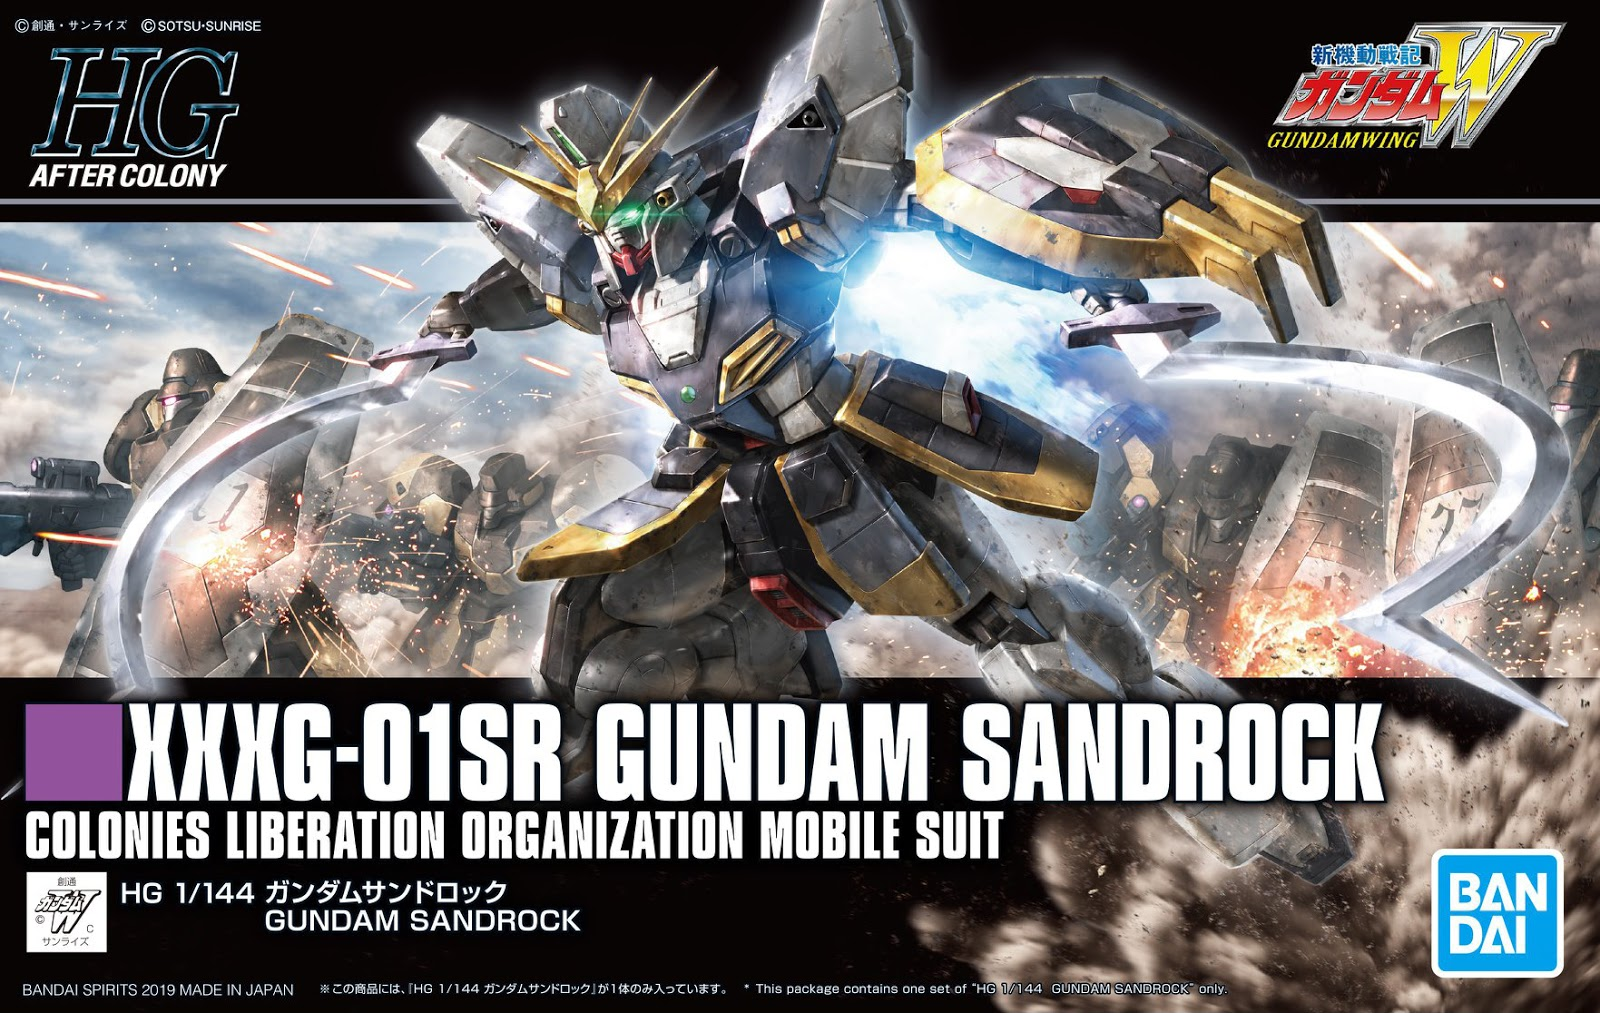 Hgac 1 144 Gundam Sandrock Release Info Box Art And Official Images Gundam Kits Collection News And Reviews